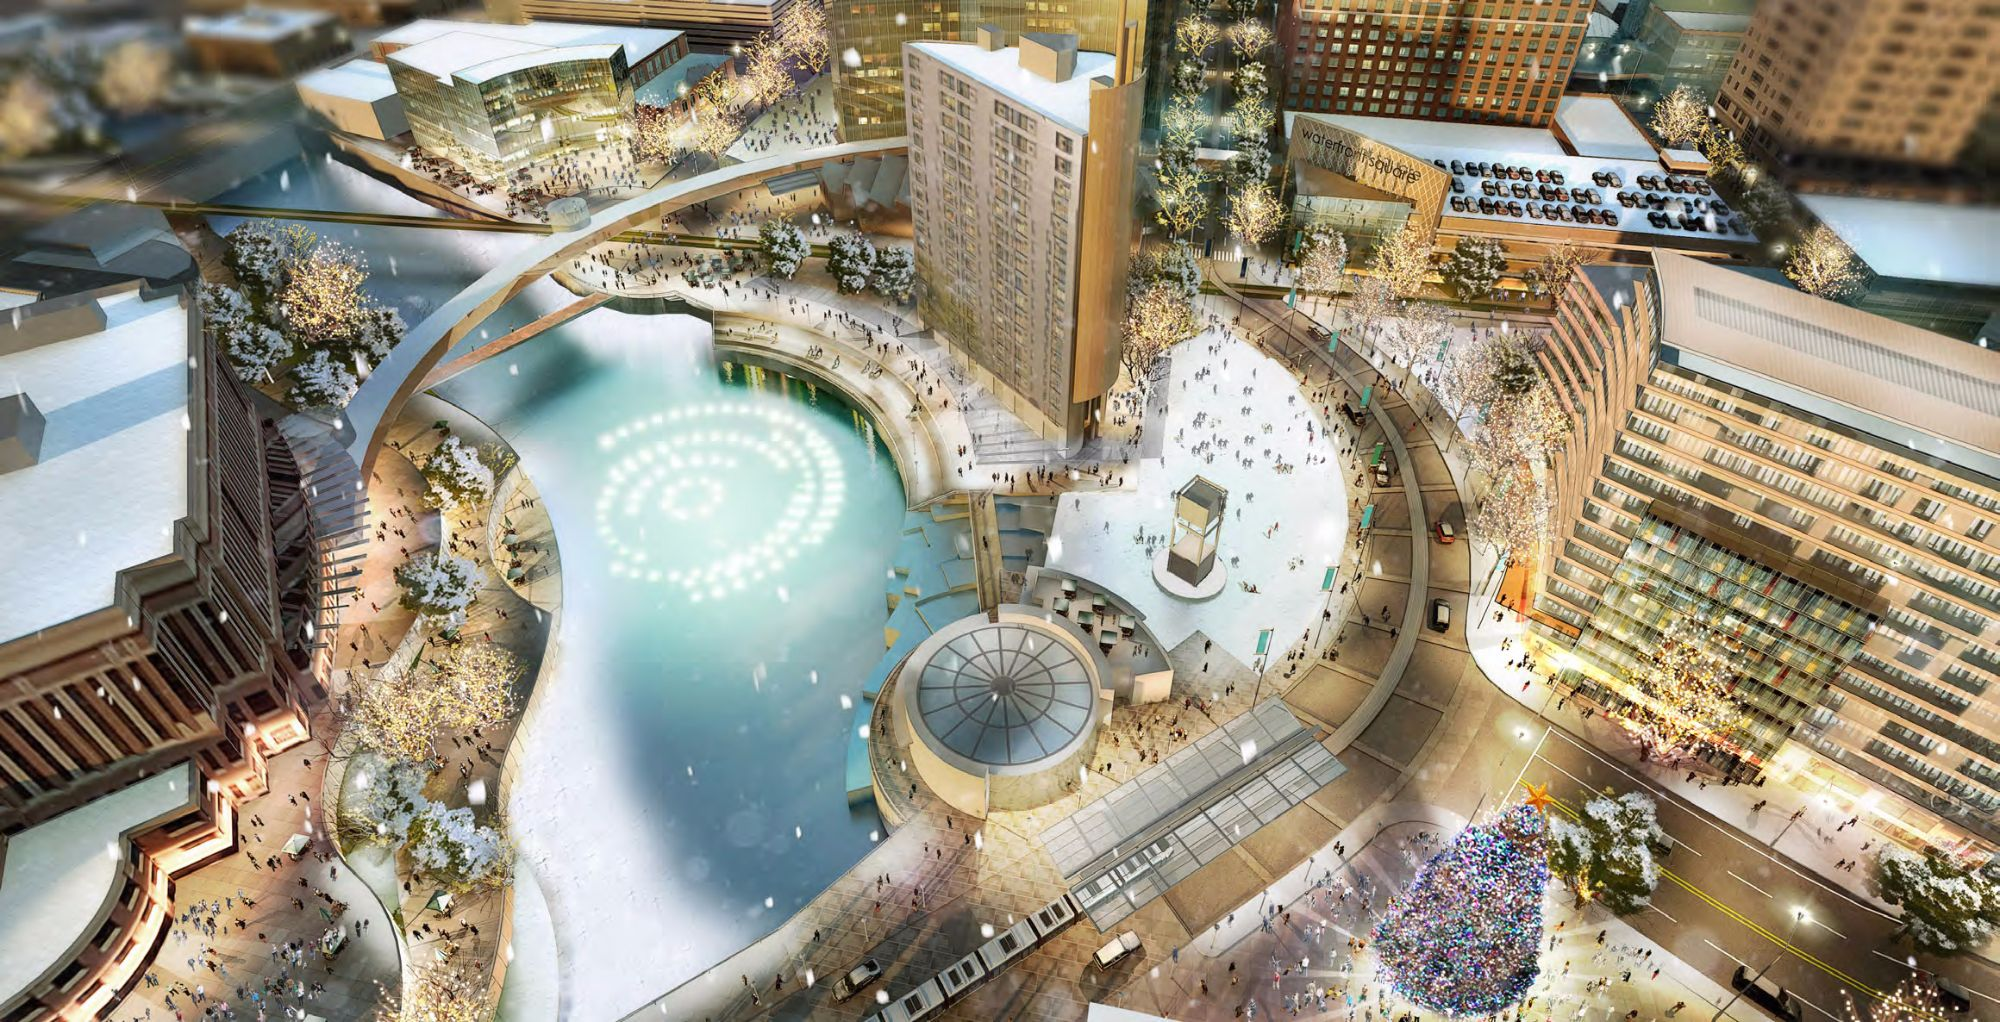 Graphic: Rendering of downtown waterfront / DMC Development Plan